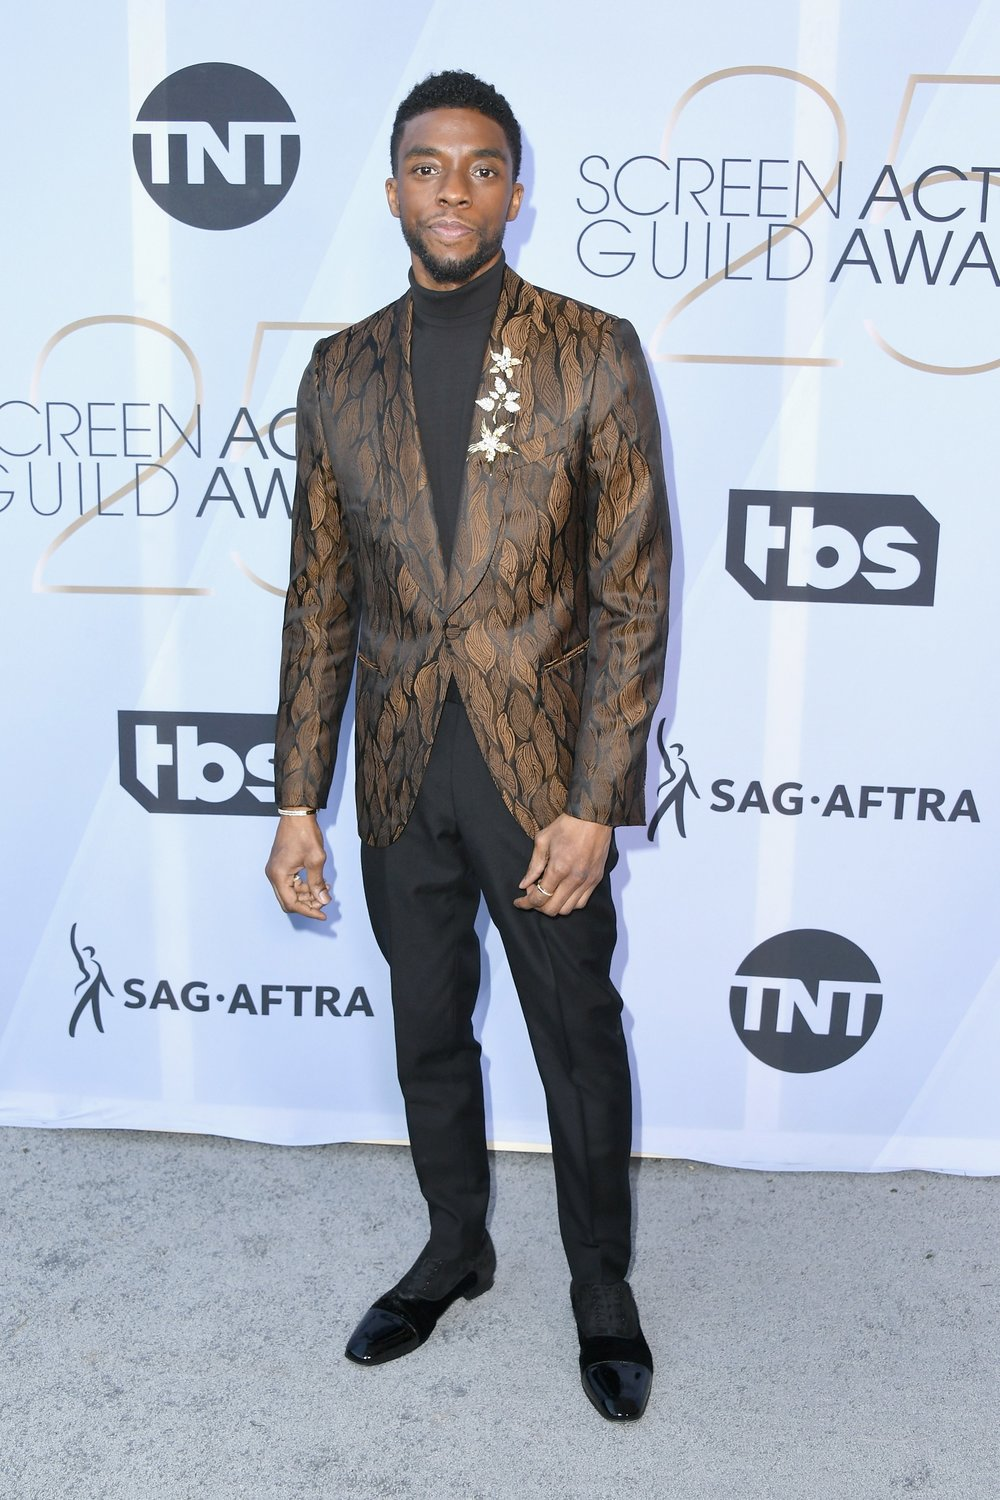 - Chadwick Boseman in Ermenegildo Zegna XXX, Christian Louboutin shoes, and Tiffany & Co. jewelry